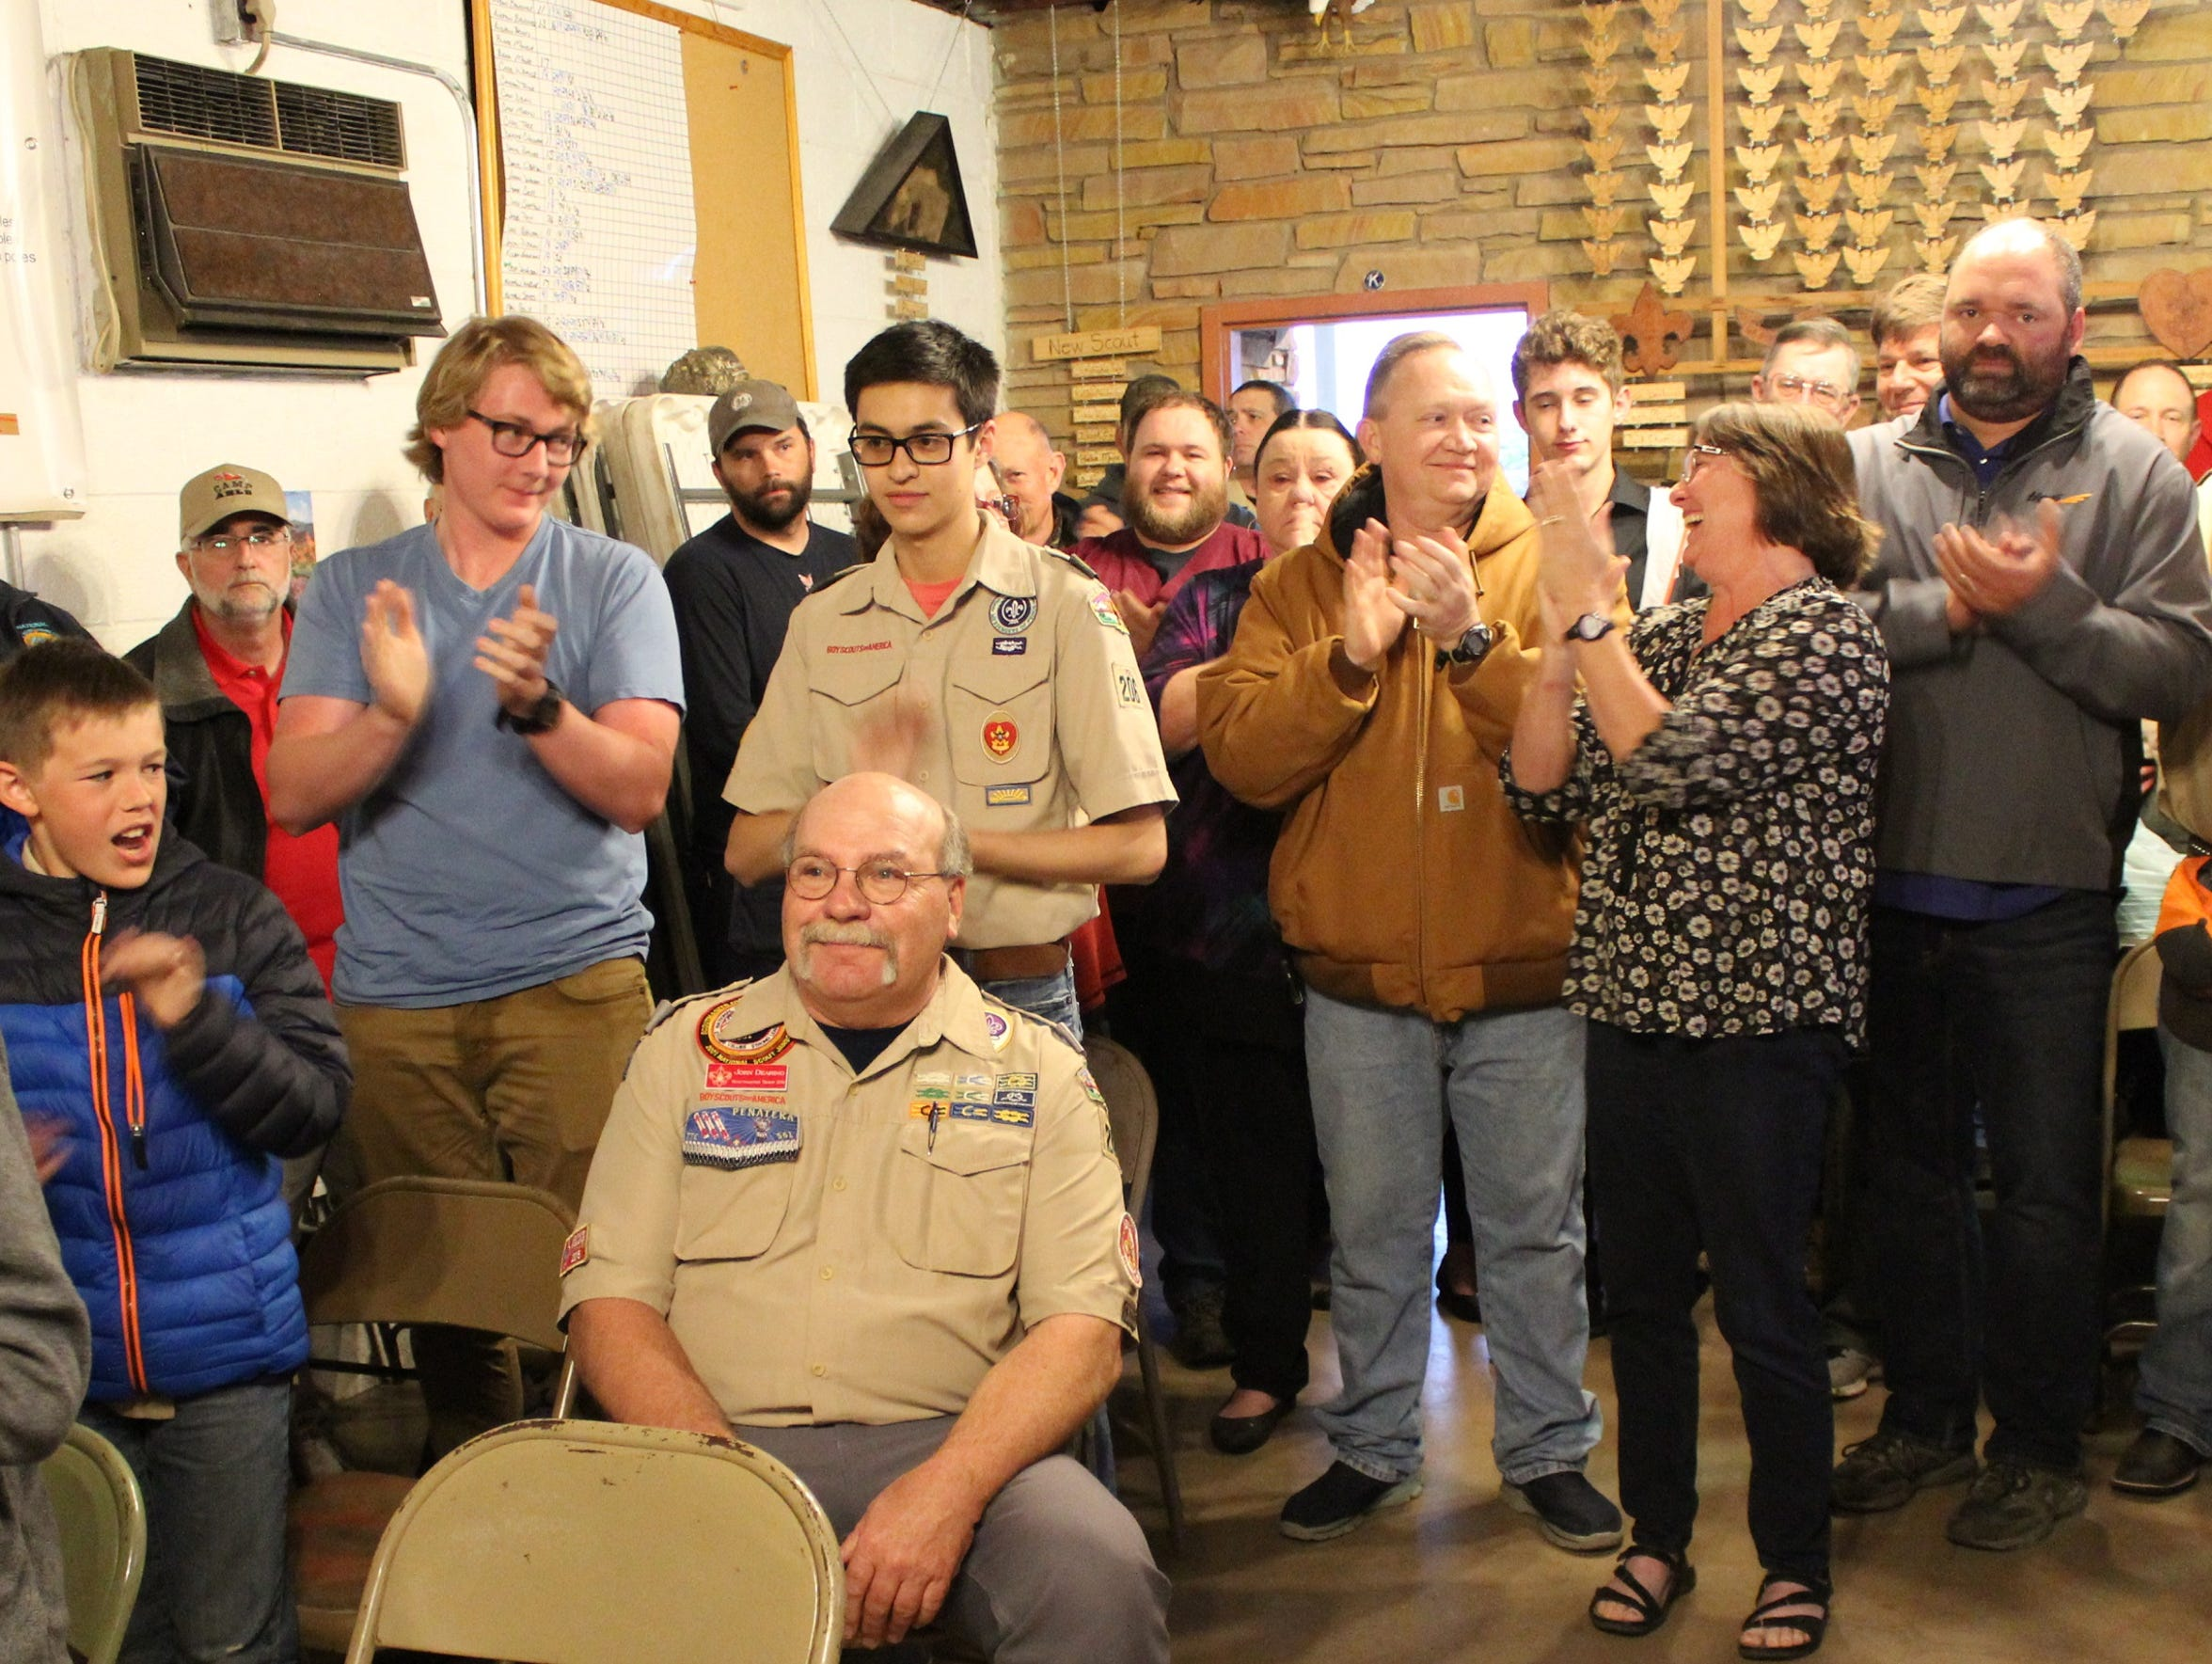 Dr. John Dearing, who is stepping aside from Boy Scout Troop 206 leadership after more than 20 years, drew a standing ovation Tuesday evening when he was recognized during a Court of Honor.